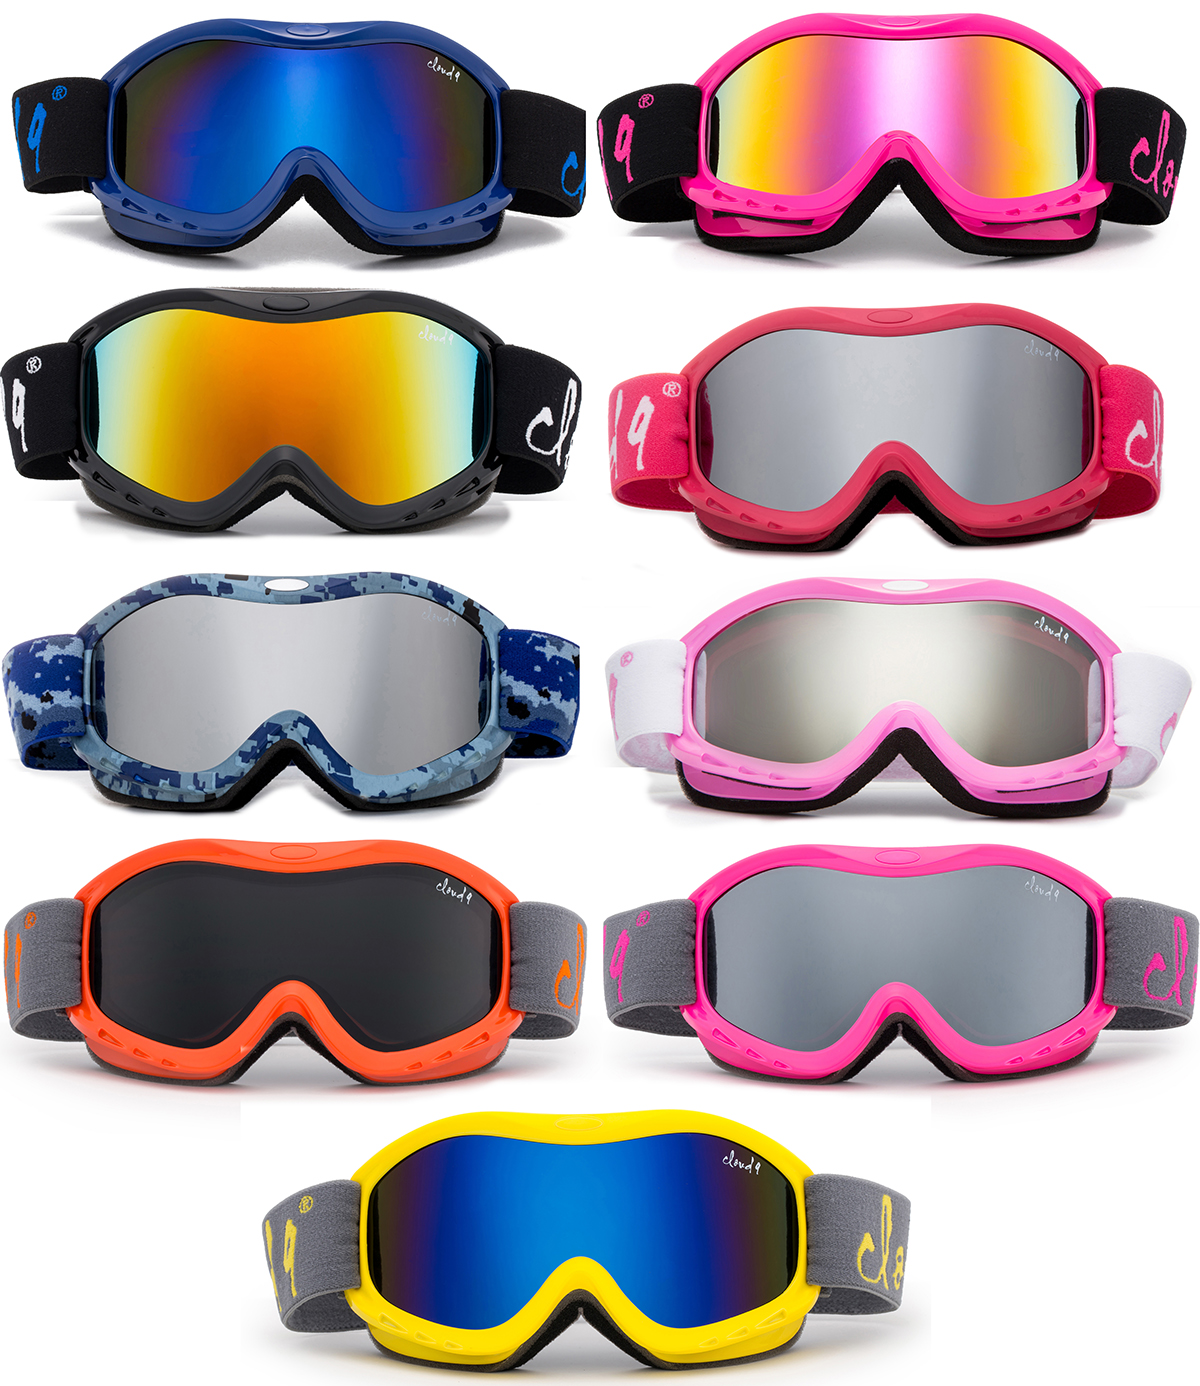 snowboard Goggles for Children outdoor sports Snow goggle SKI Goggles for kids